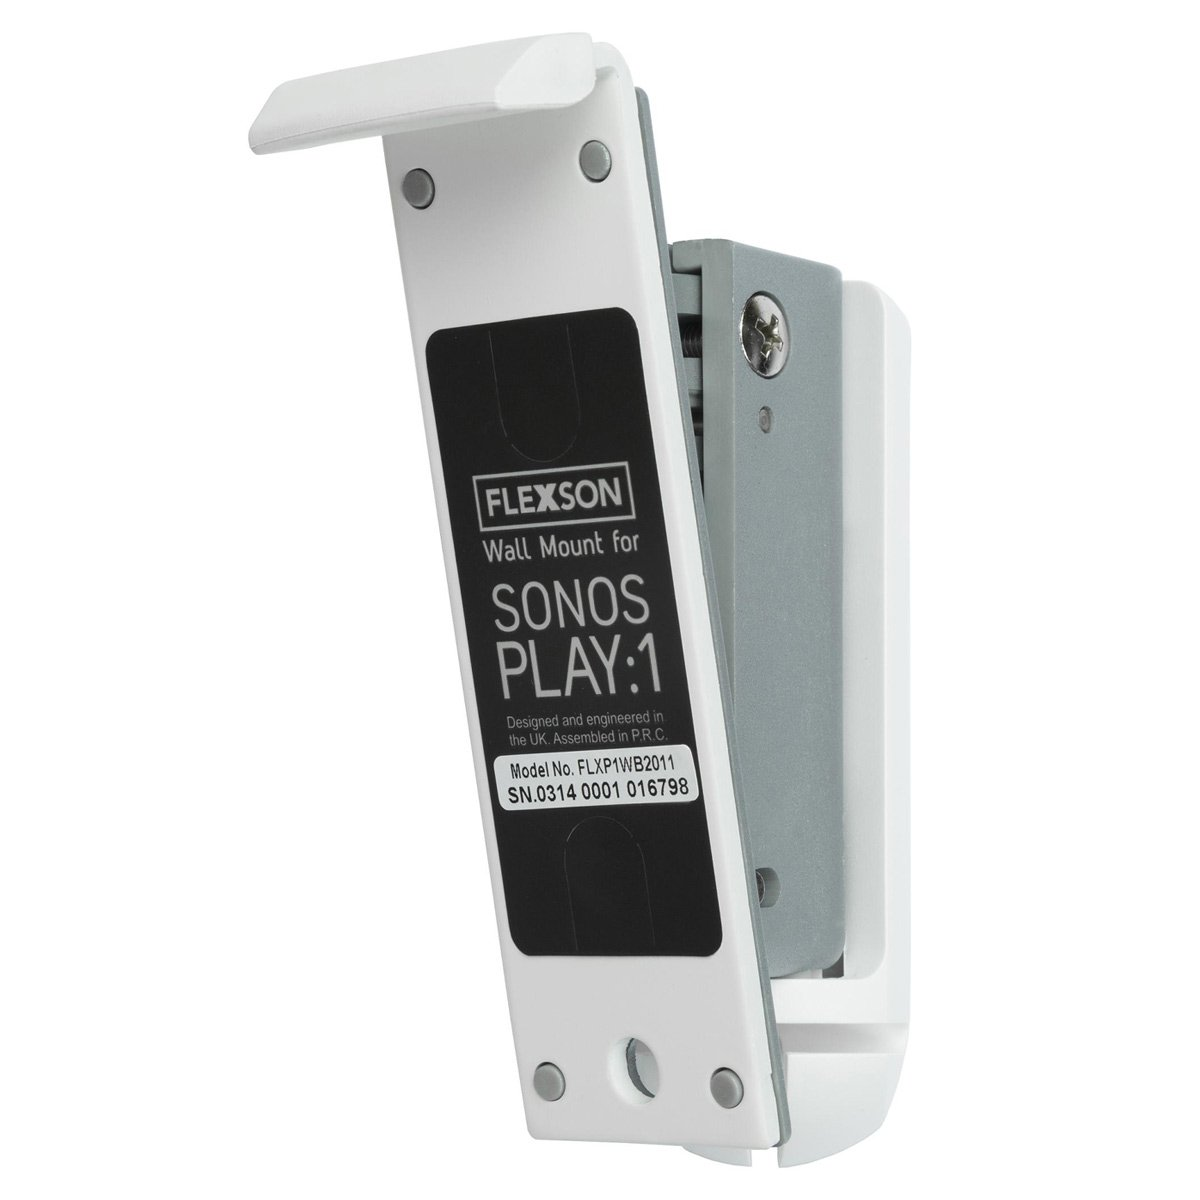 Flexson Wall Mount for Sonos PLAY:1 with Mounting Hardware - Each (White)